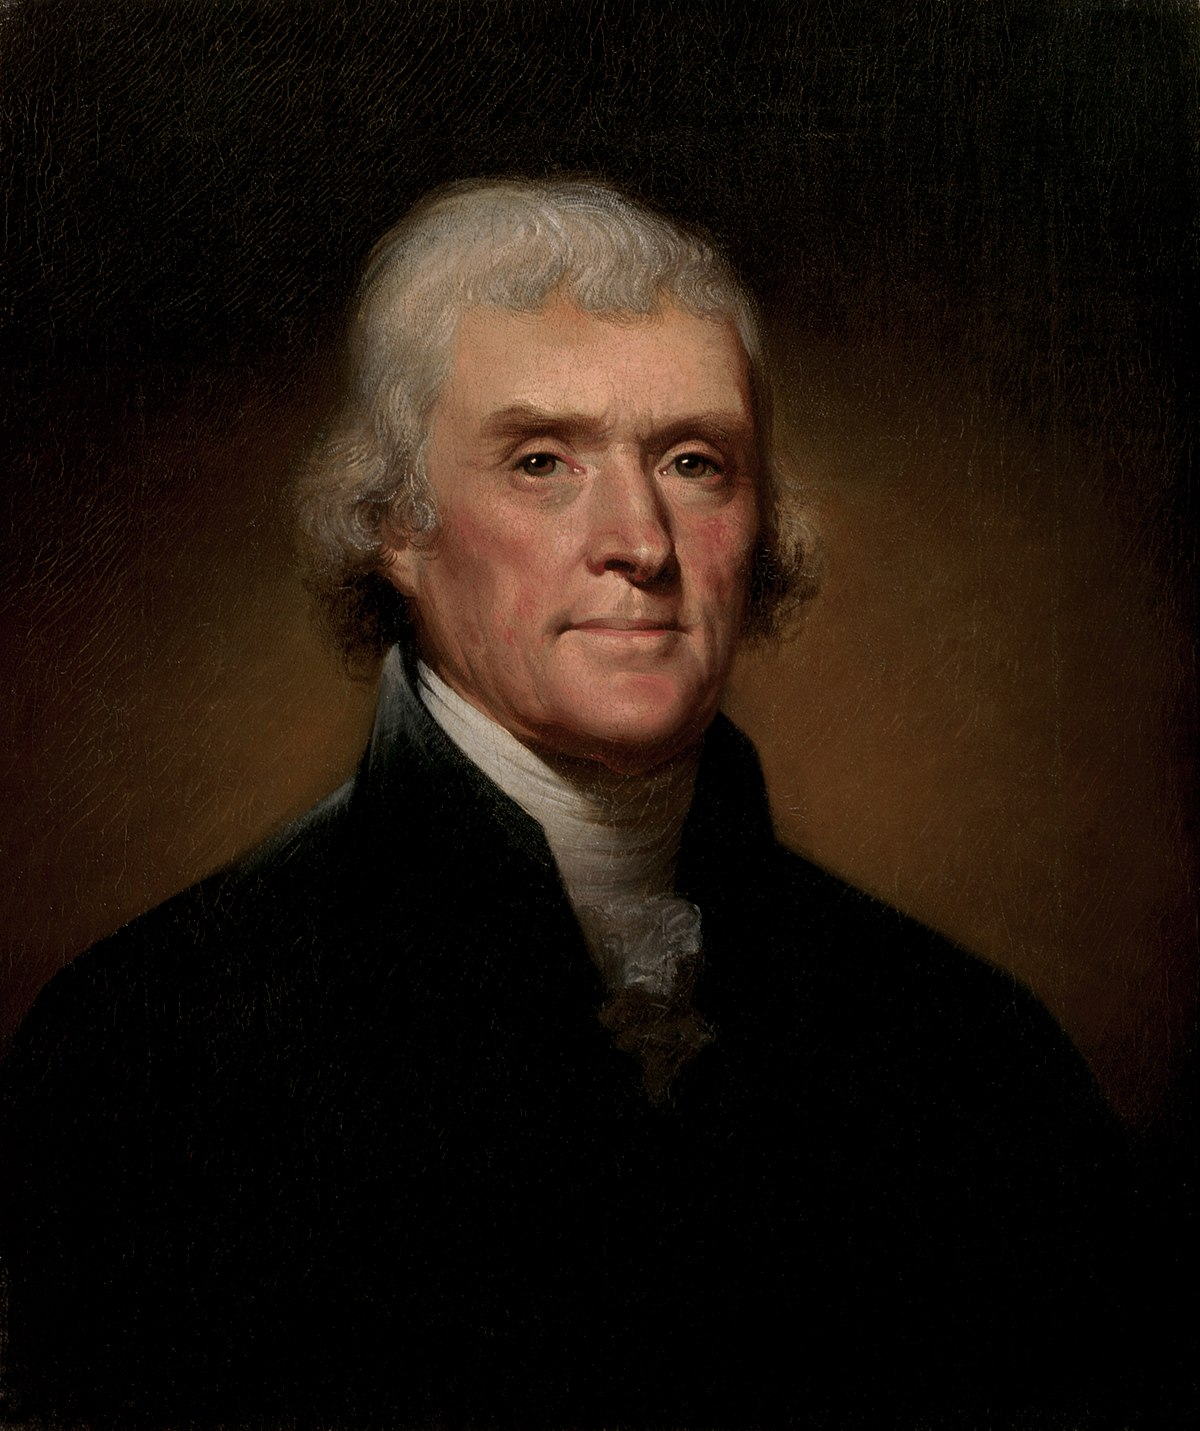 On this day in history: Thomas Jefferson is elected president of the United States